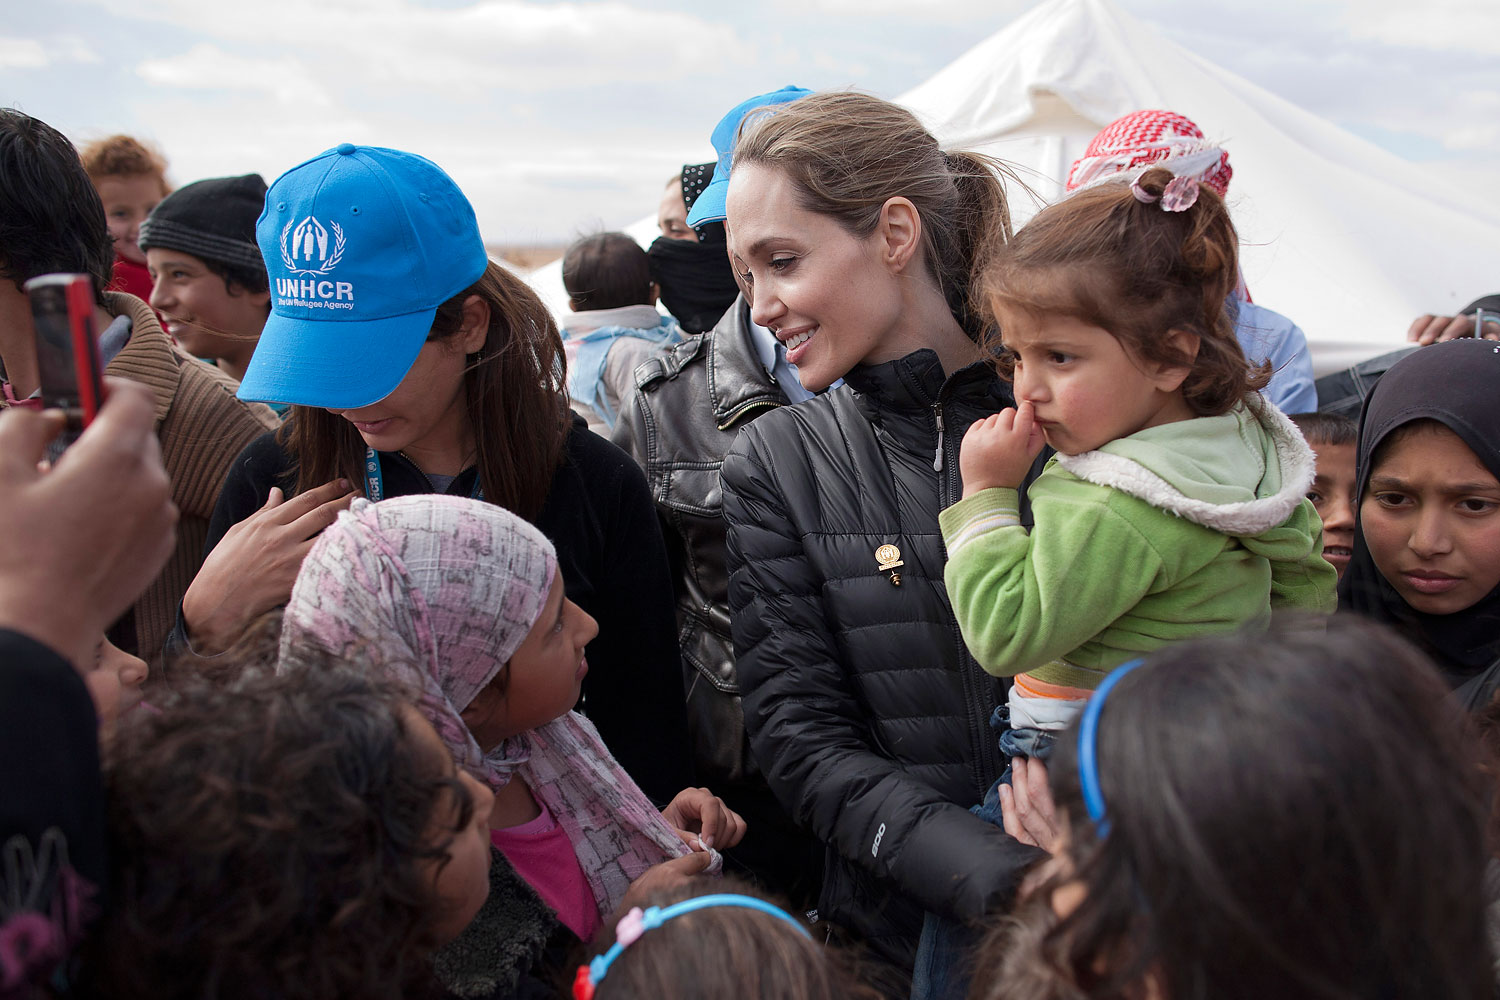 Angelina Jolie meets with refugees at the Zaatari refugee camp on Dec. 6, 2012 outside of Mafraq, Jordan.